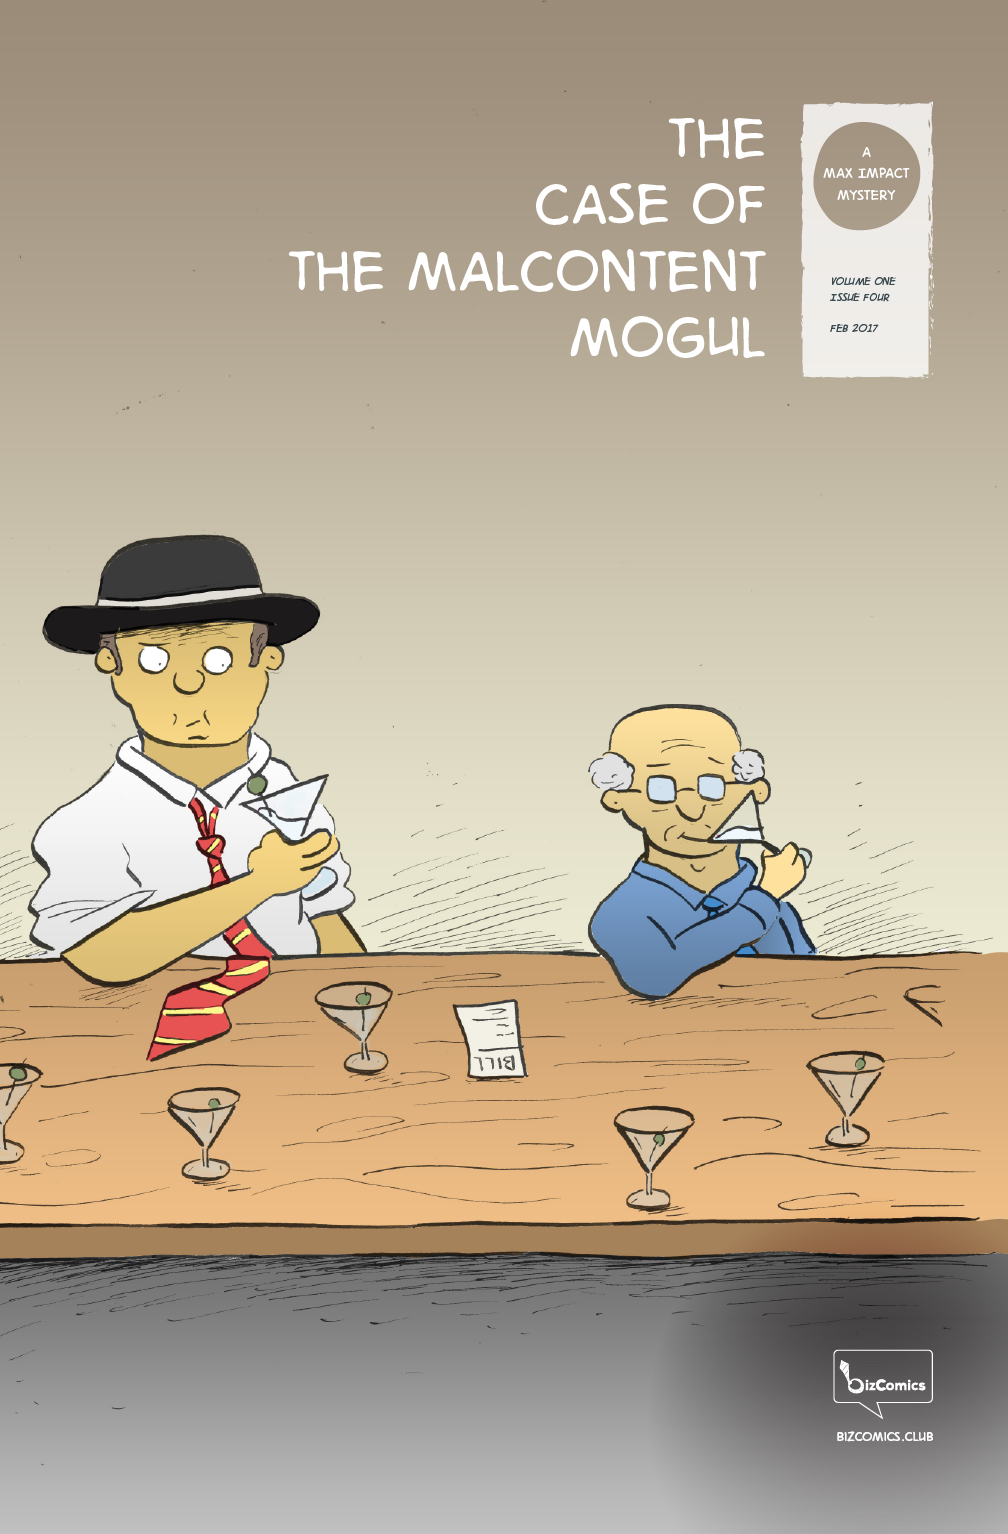 The Case of the Malcontent Mogul